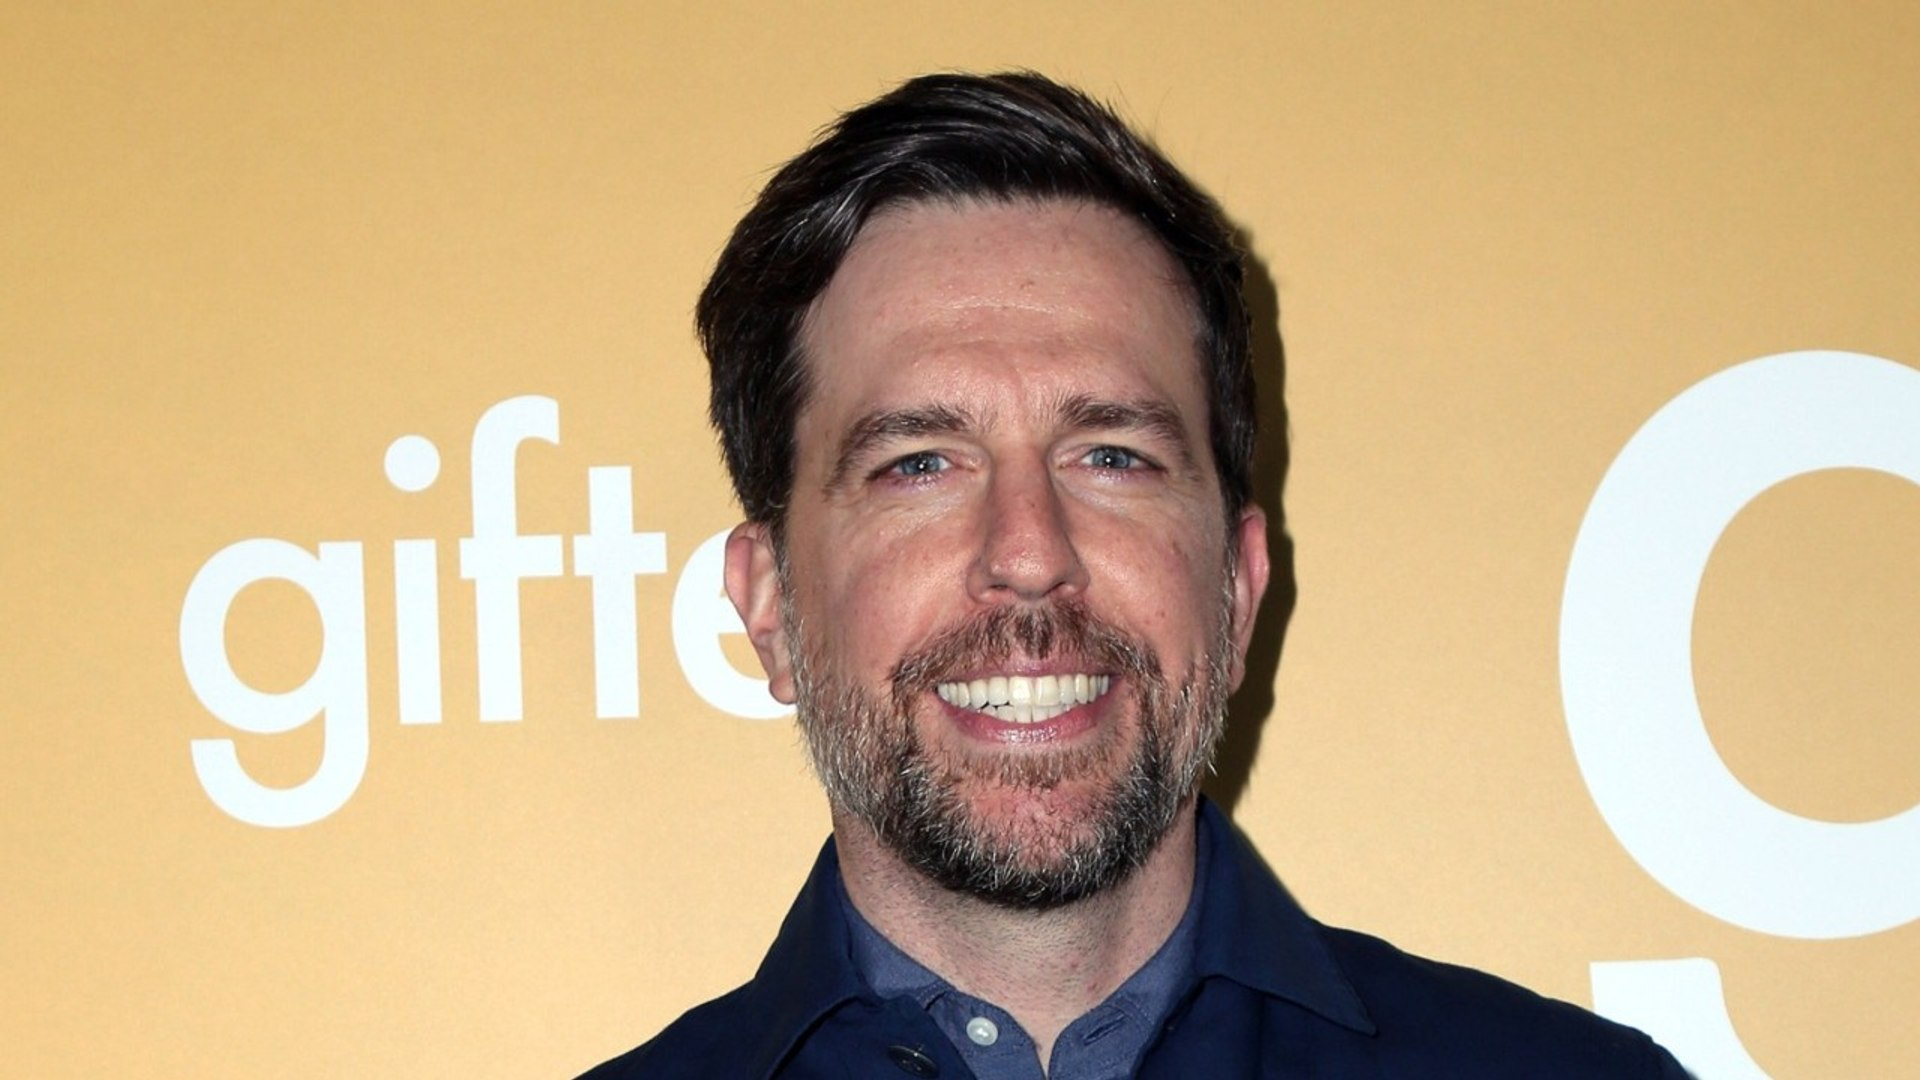 Comedy Central, Ed Helms Team Up for 'Fake News' Show